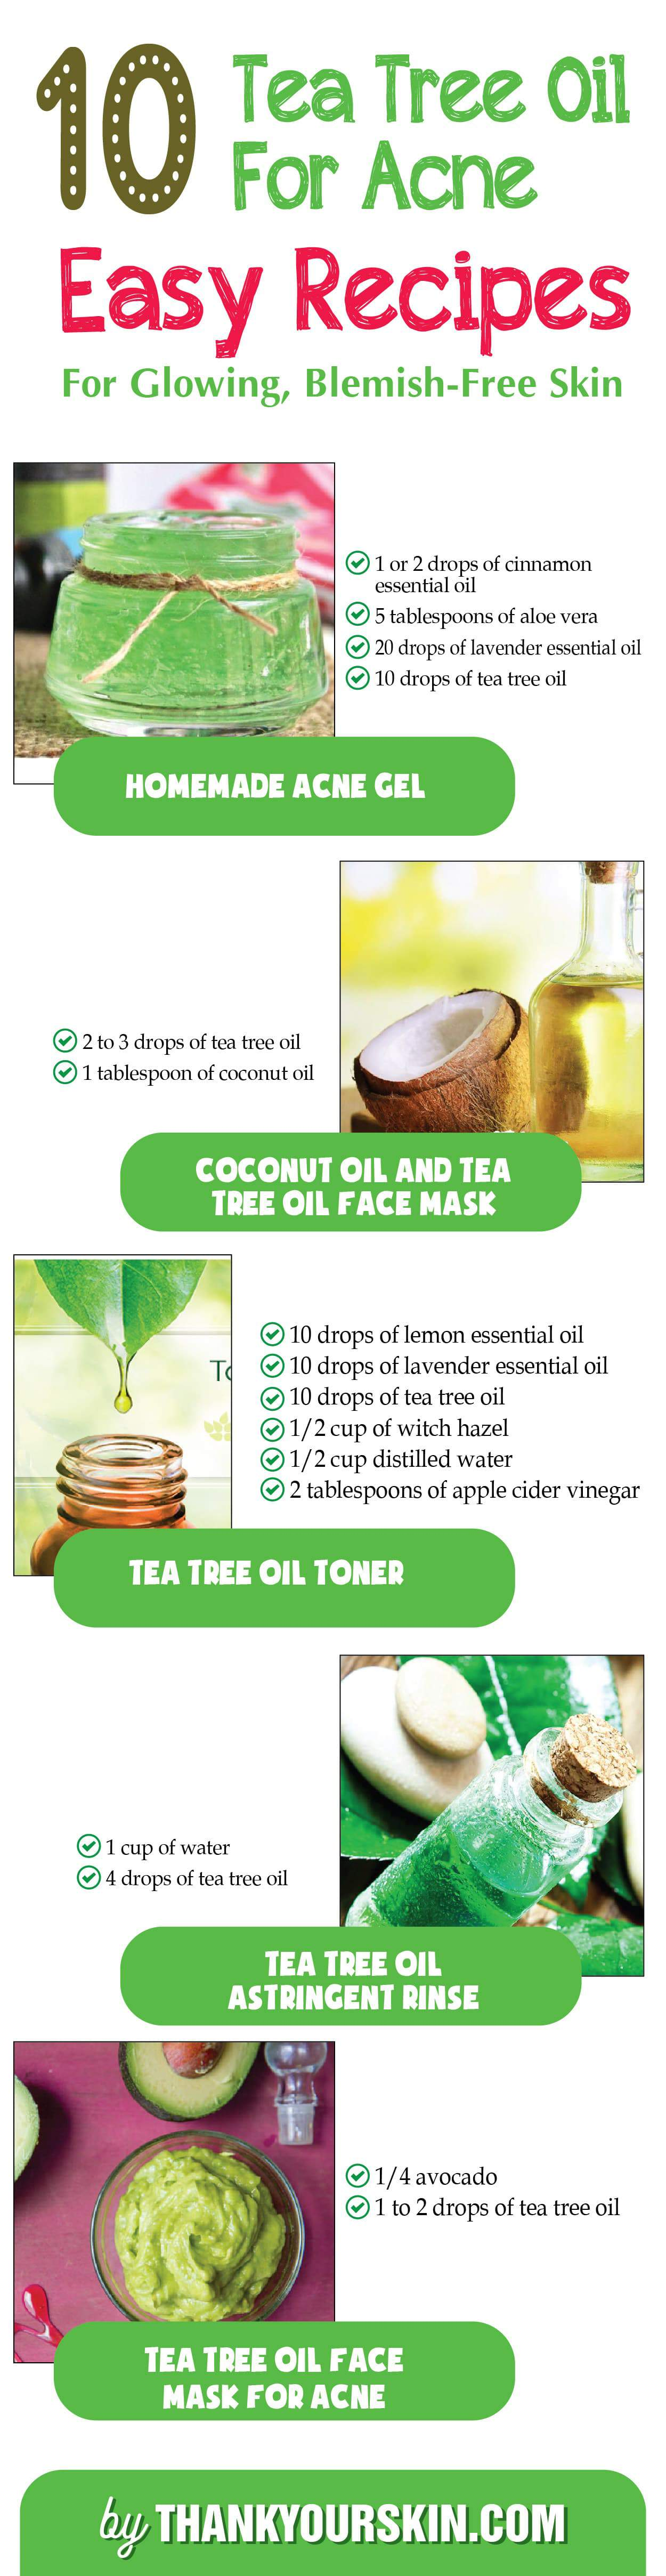 DIY Tea tree oil for Acne